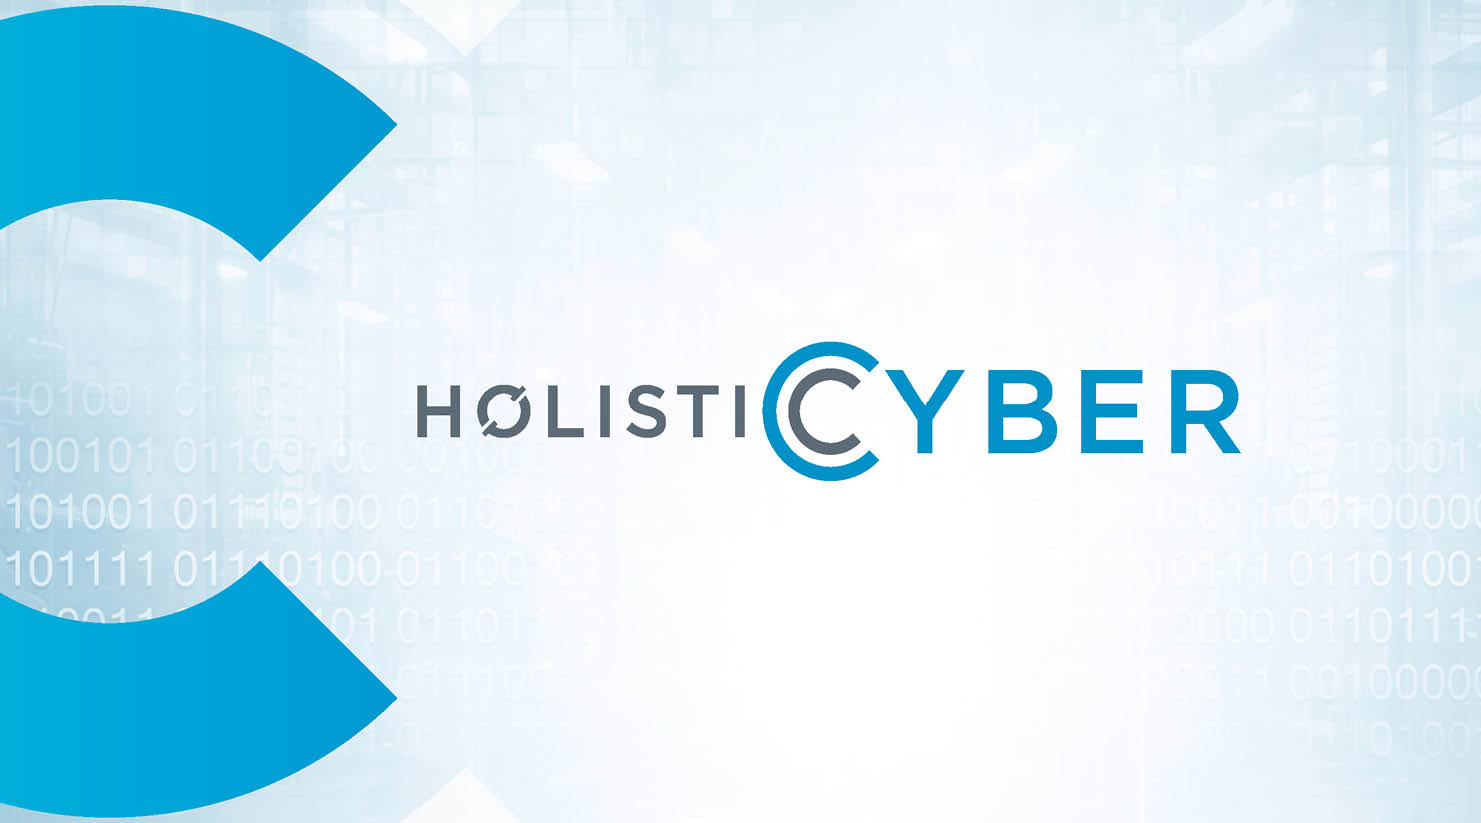 Holisticyber - Nation State Cyber Security Enterprise